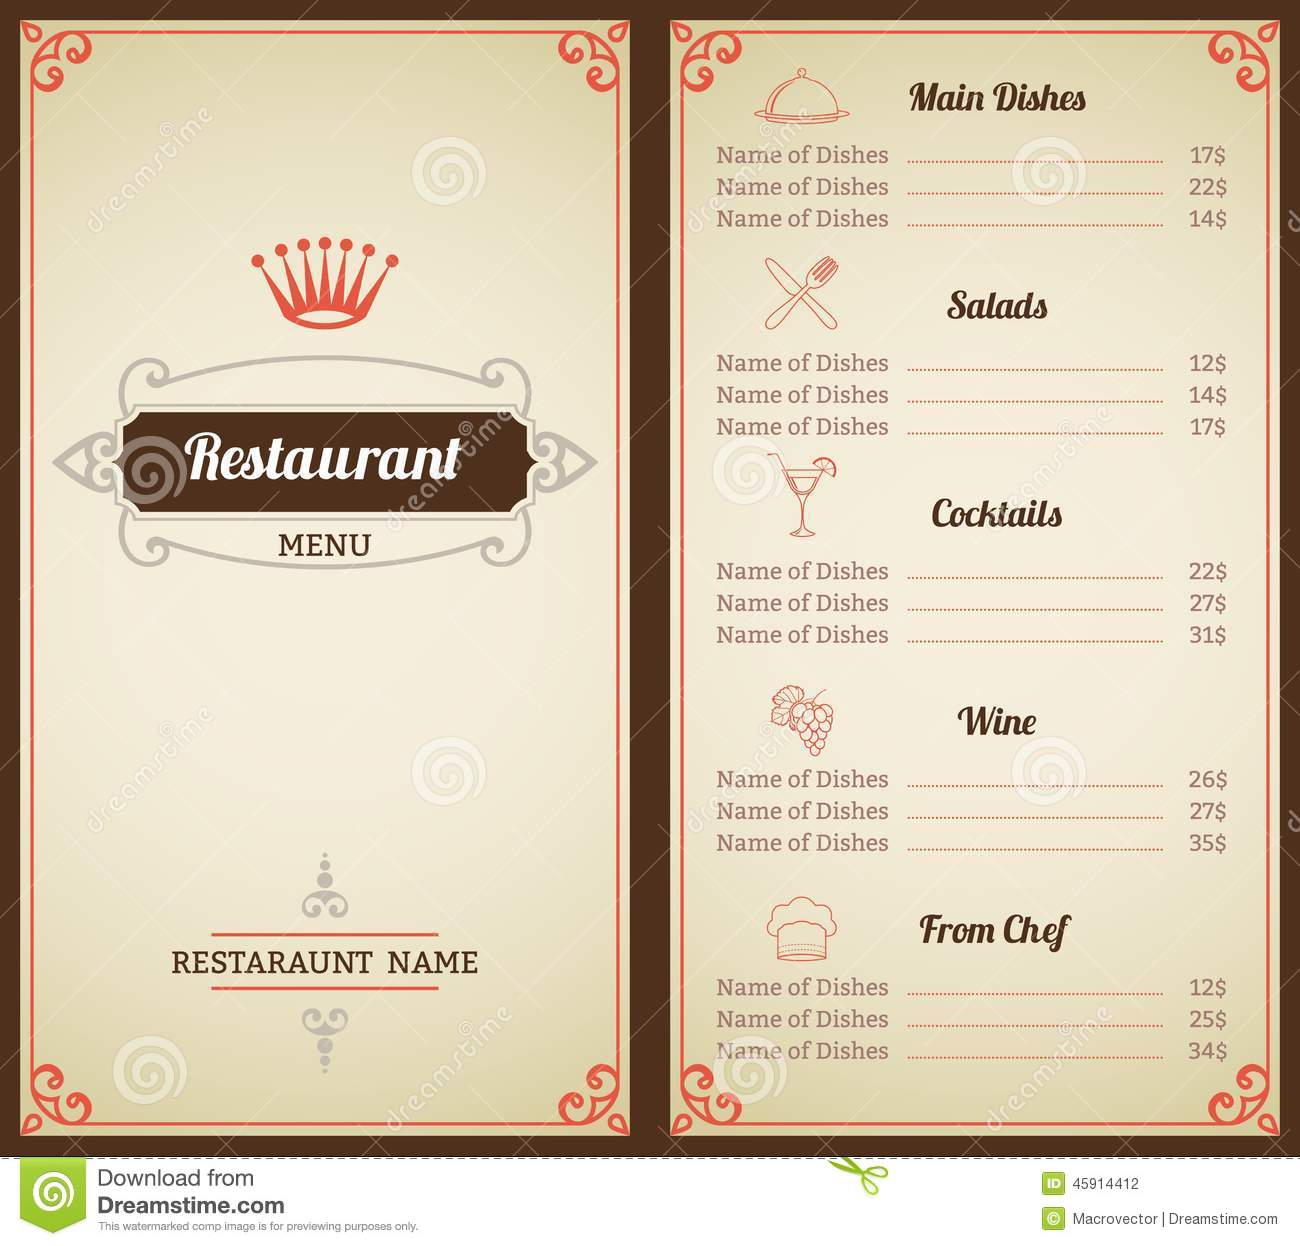 Restaurant Menu Template Stock Vector - Image: 45914412